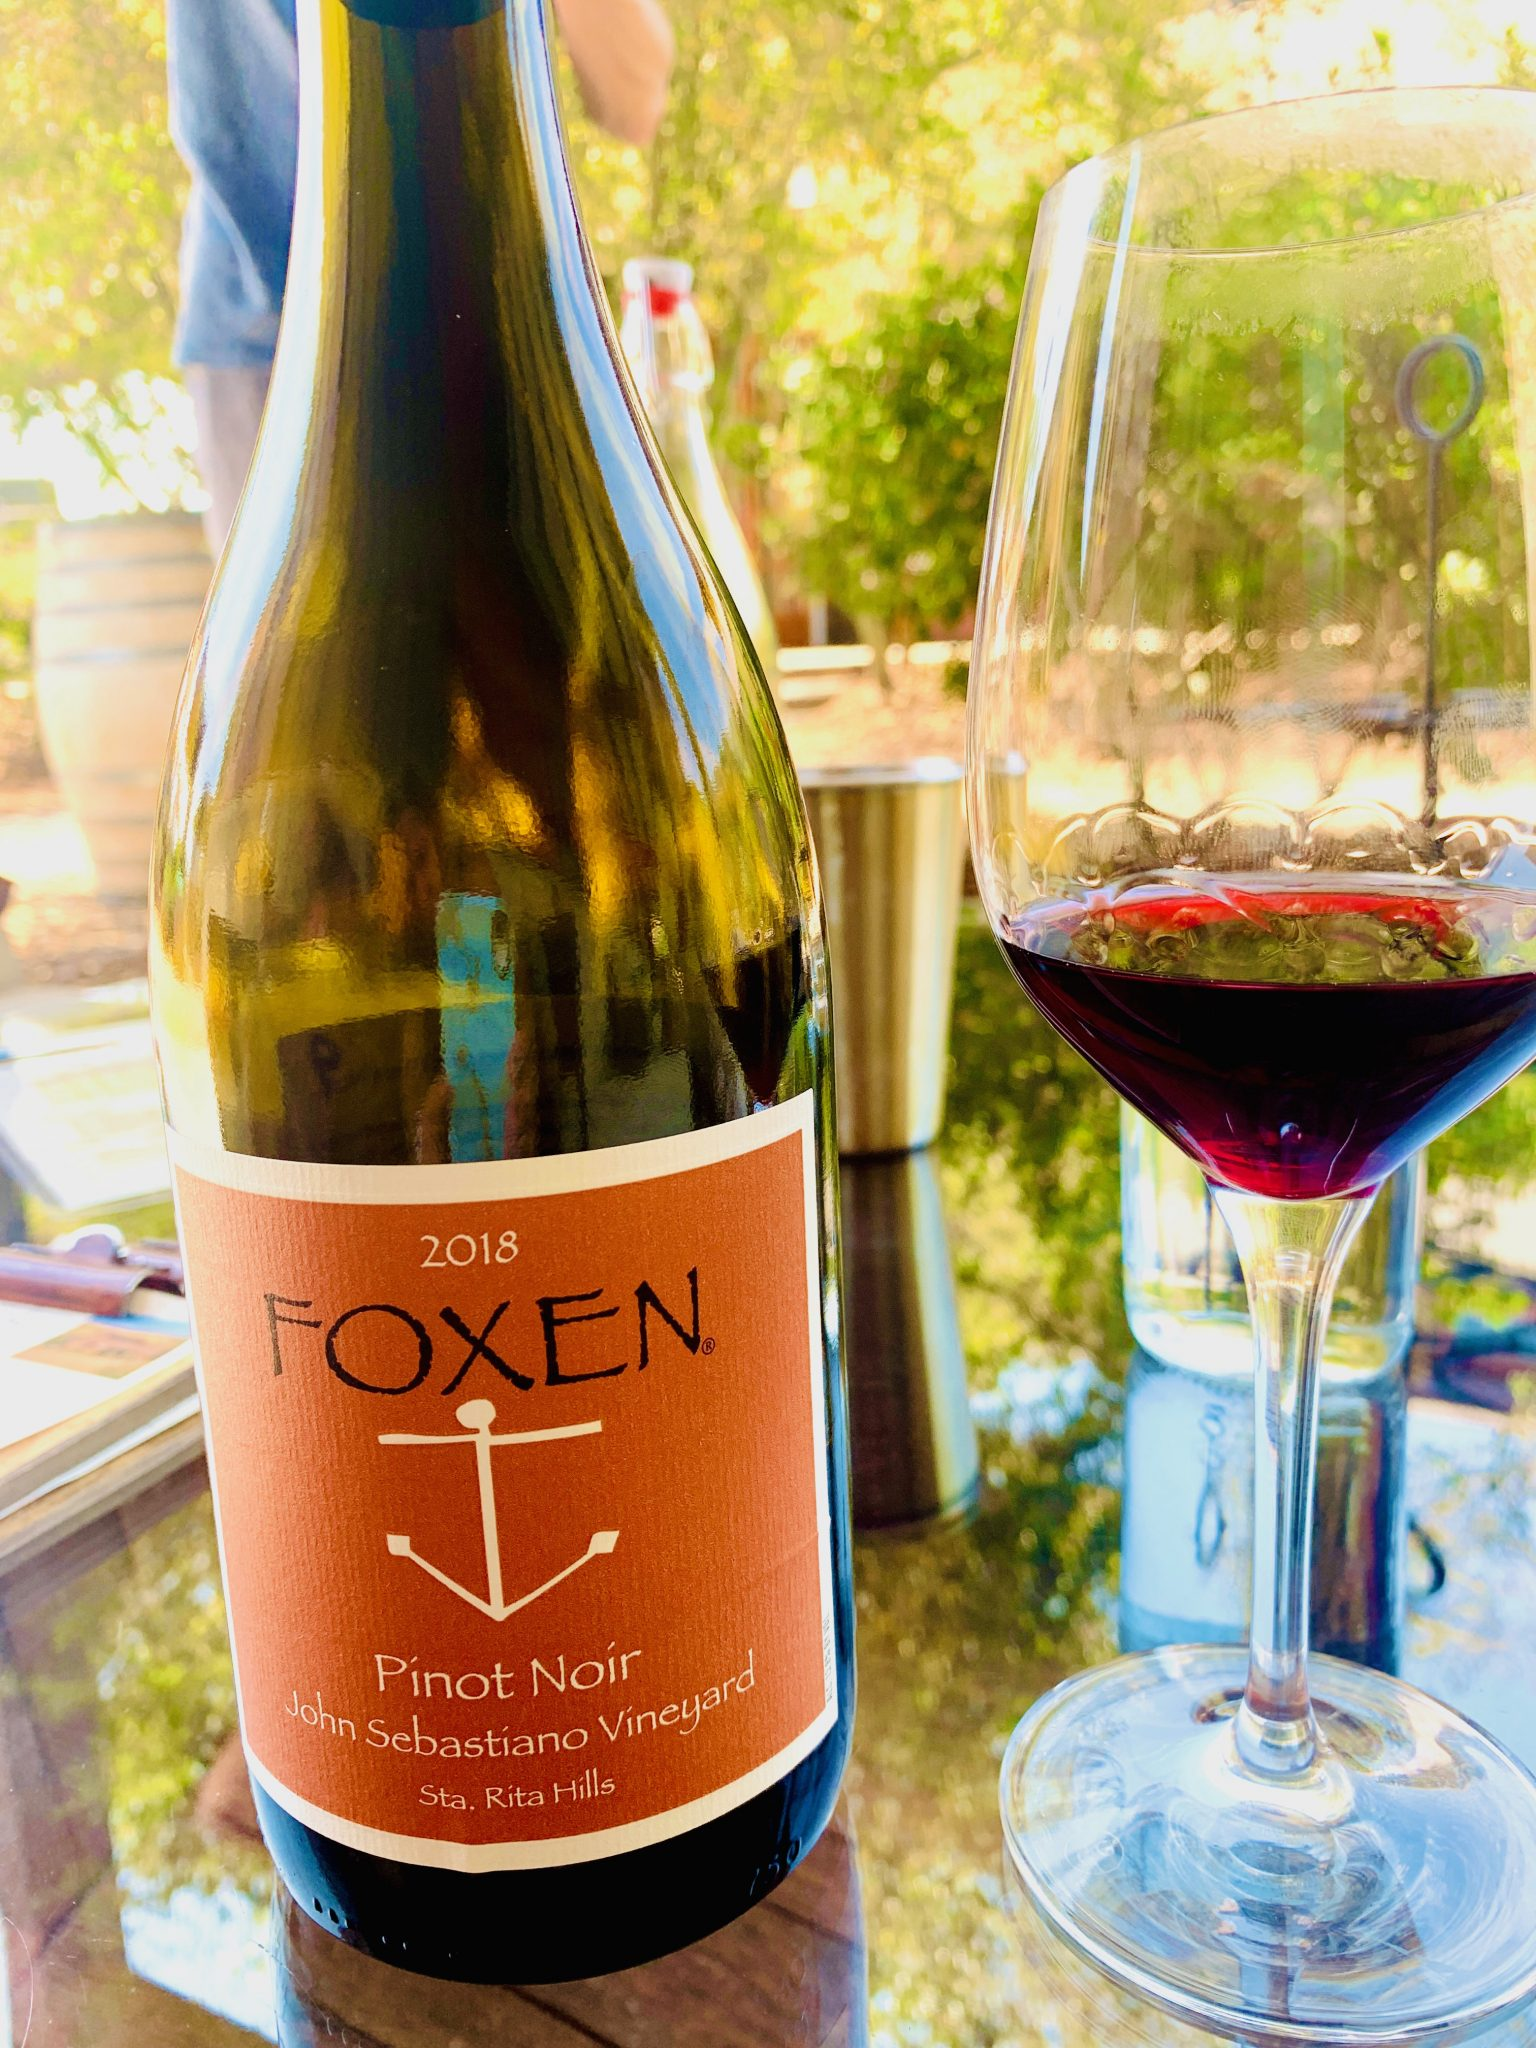 Foxen winery pinot noir is delicious